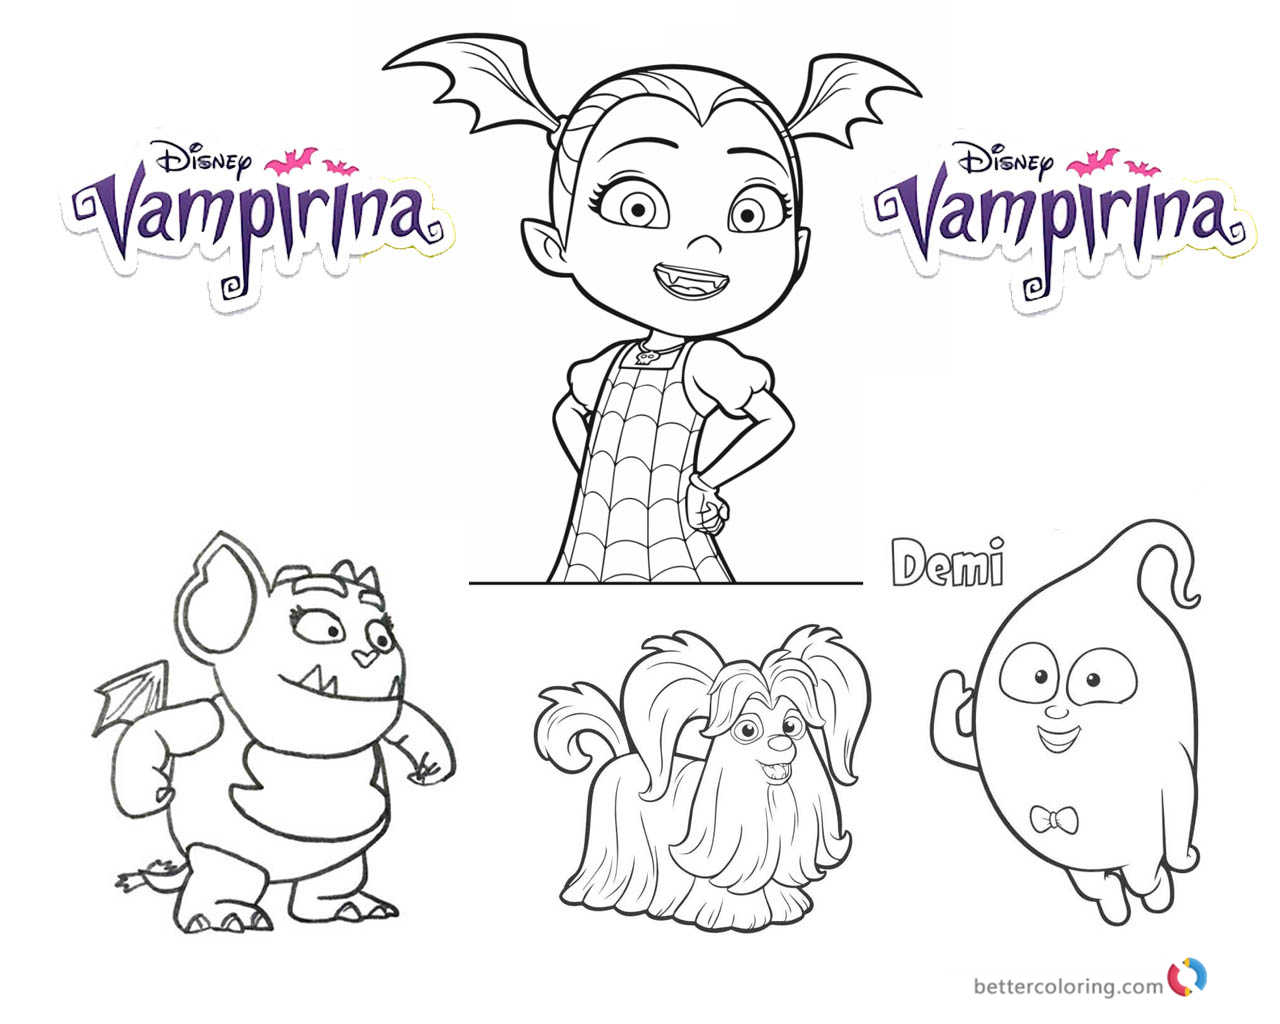 Vampirina Coloring Pages Pictures To Pin On Pinterest Thepinsta